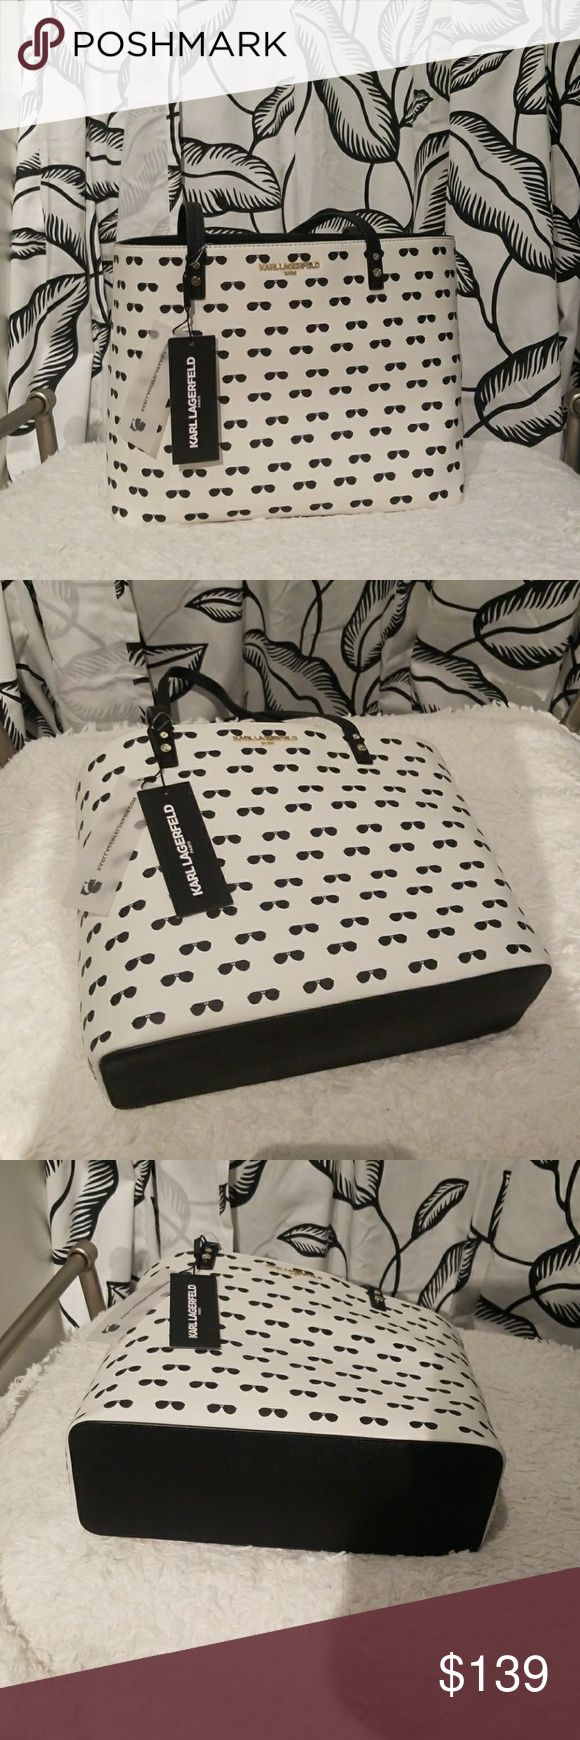 Karl Lagerfeld sunglass tote Karl Lagerfeld black and white tote. NWT  14 in (Width) x 10 in (Height) x 5 in (Depth)  Handles are 11 inches drop. Fit shoulders comfortably. Karl Lagerfeld Bags Totes